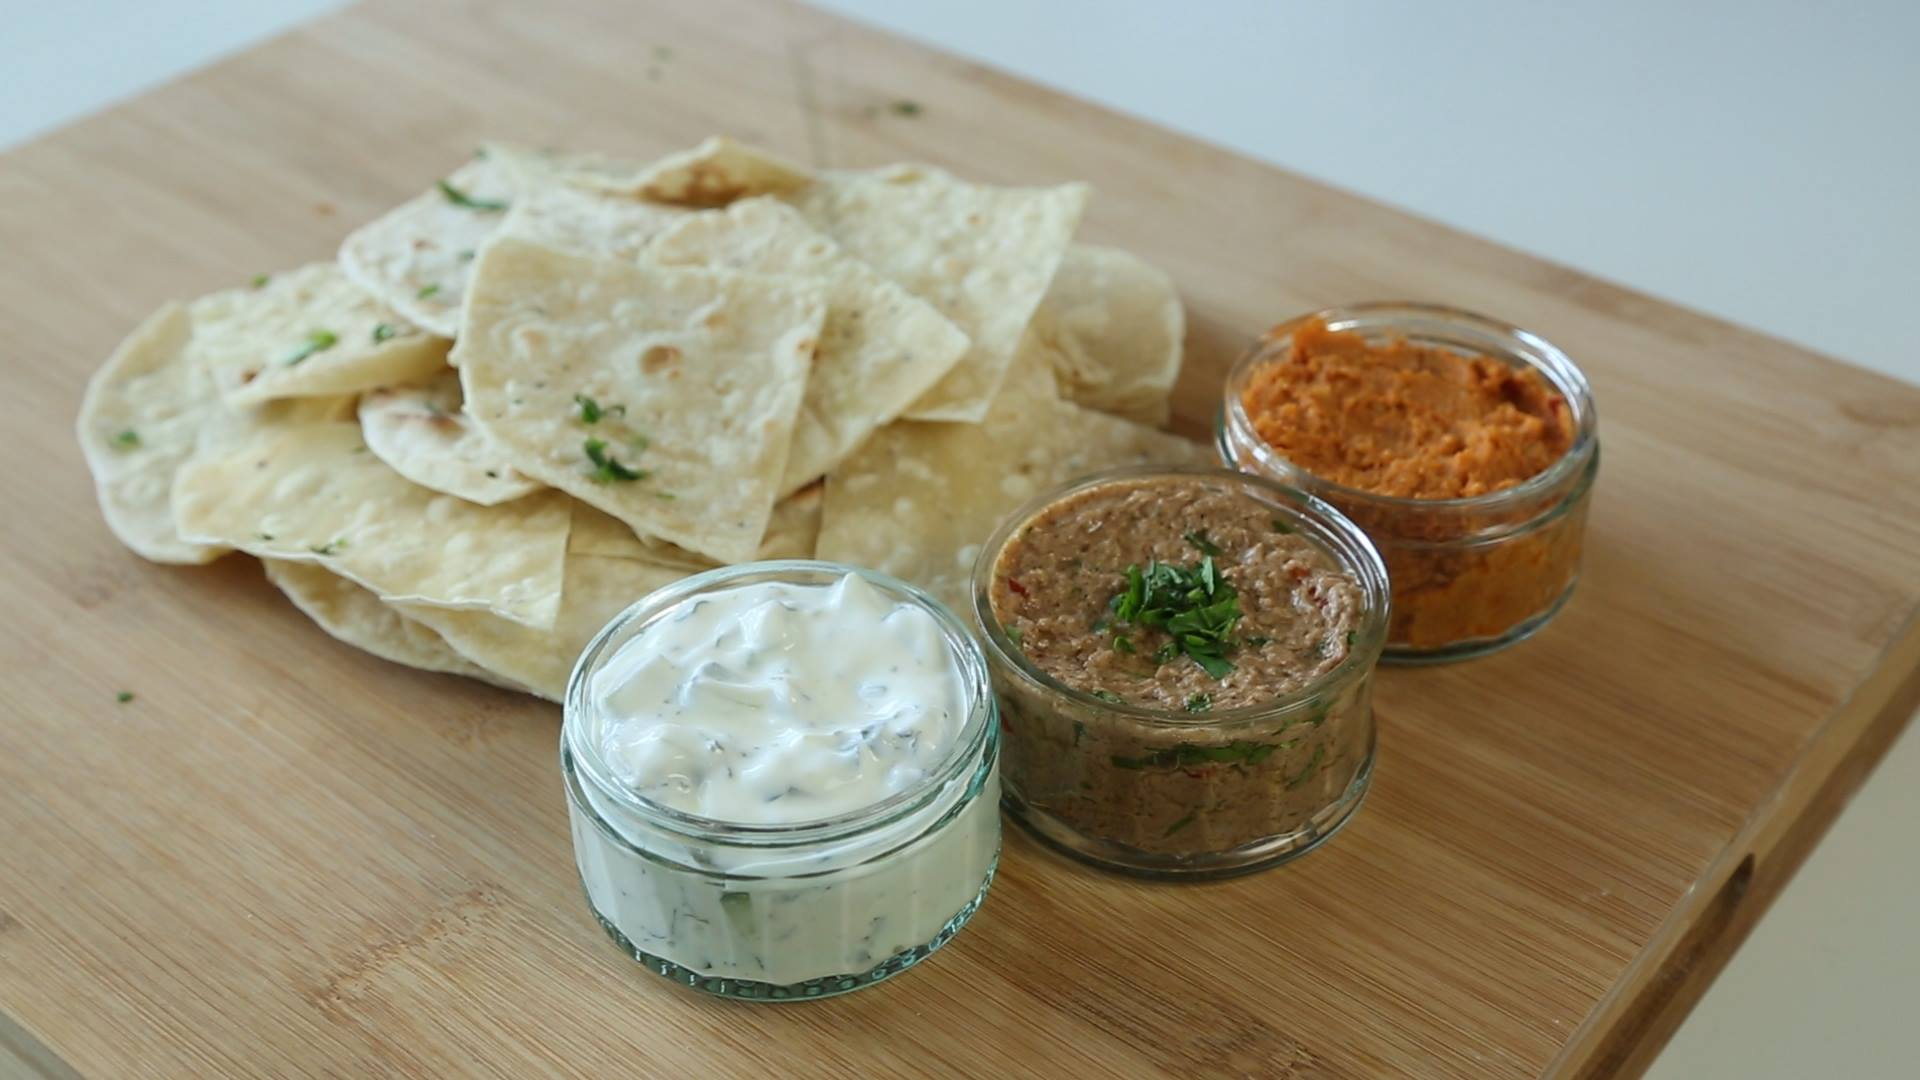 13091632 10153482970455598 680472542 o Heres How You Make Flatbreads And A Trio Of Dips